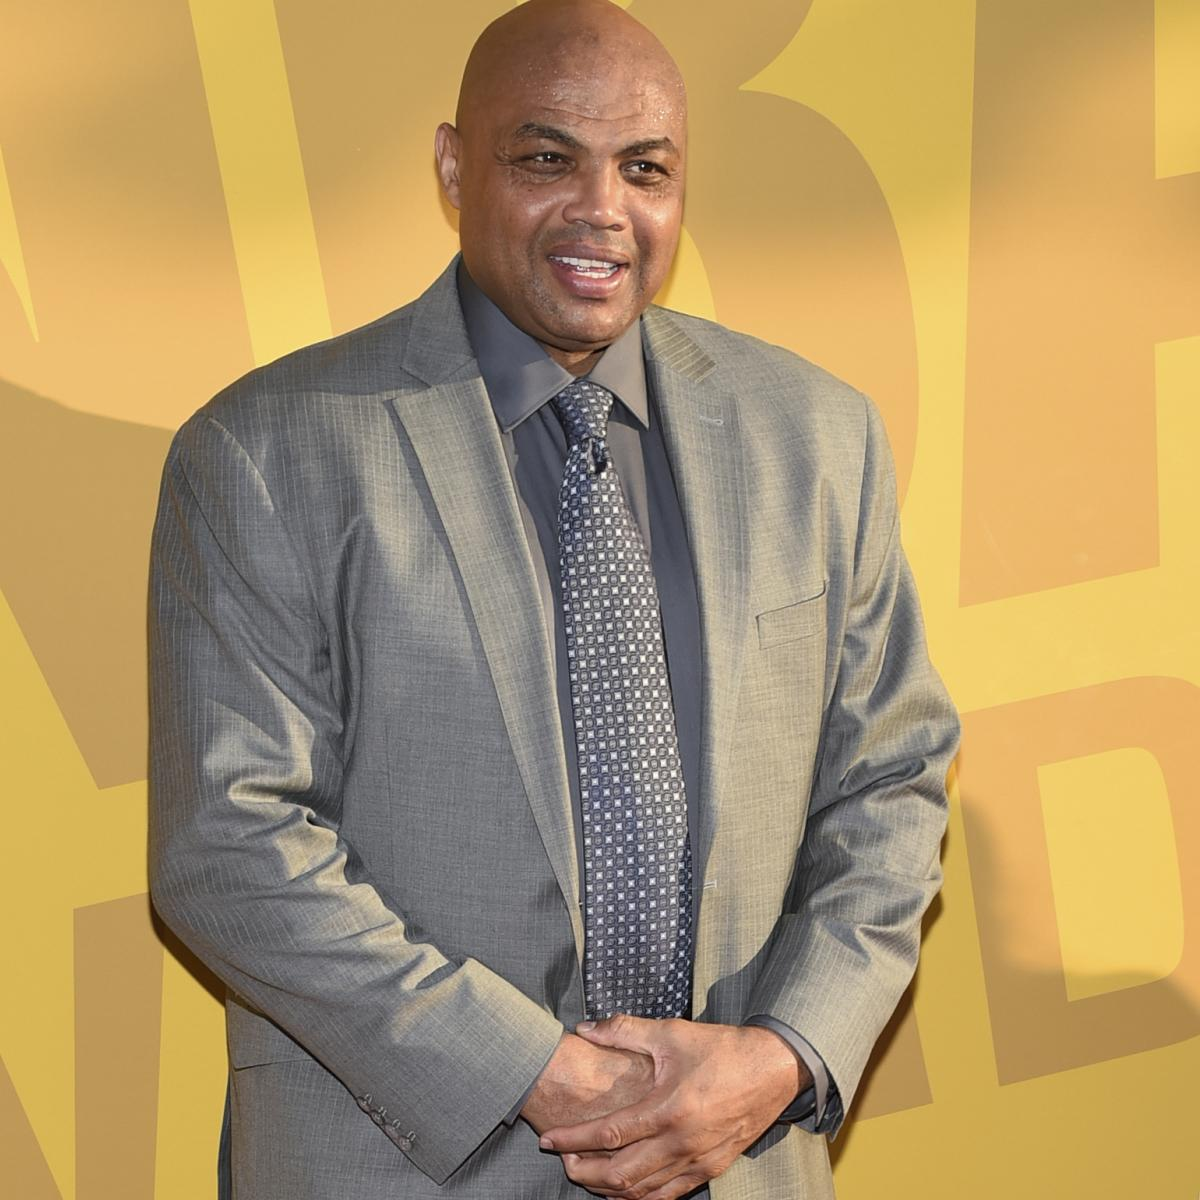 Charles Barkley Says Teams Should Go to White House on ESPN's Mike & Mike